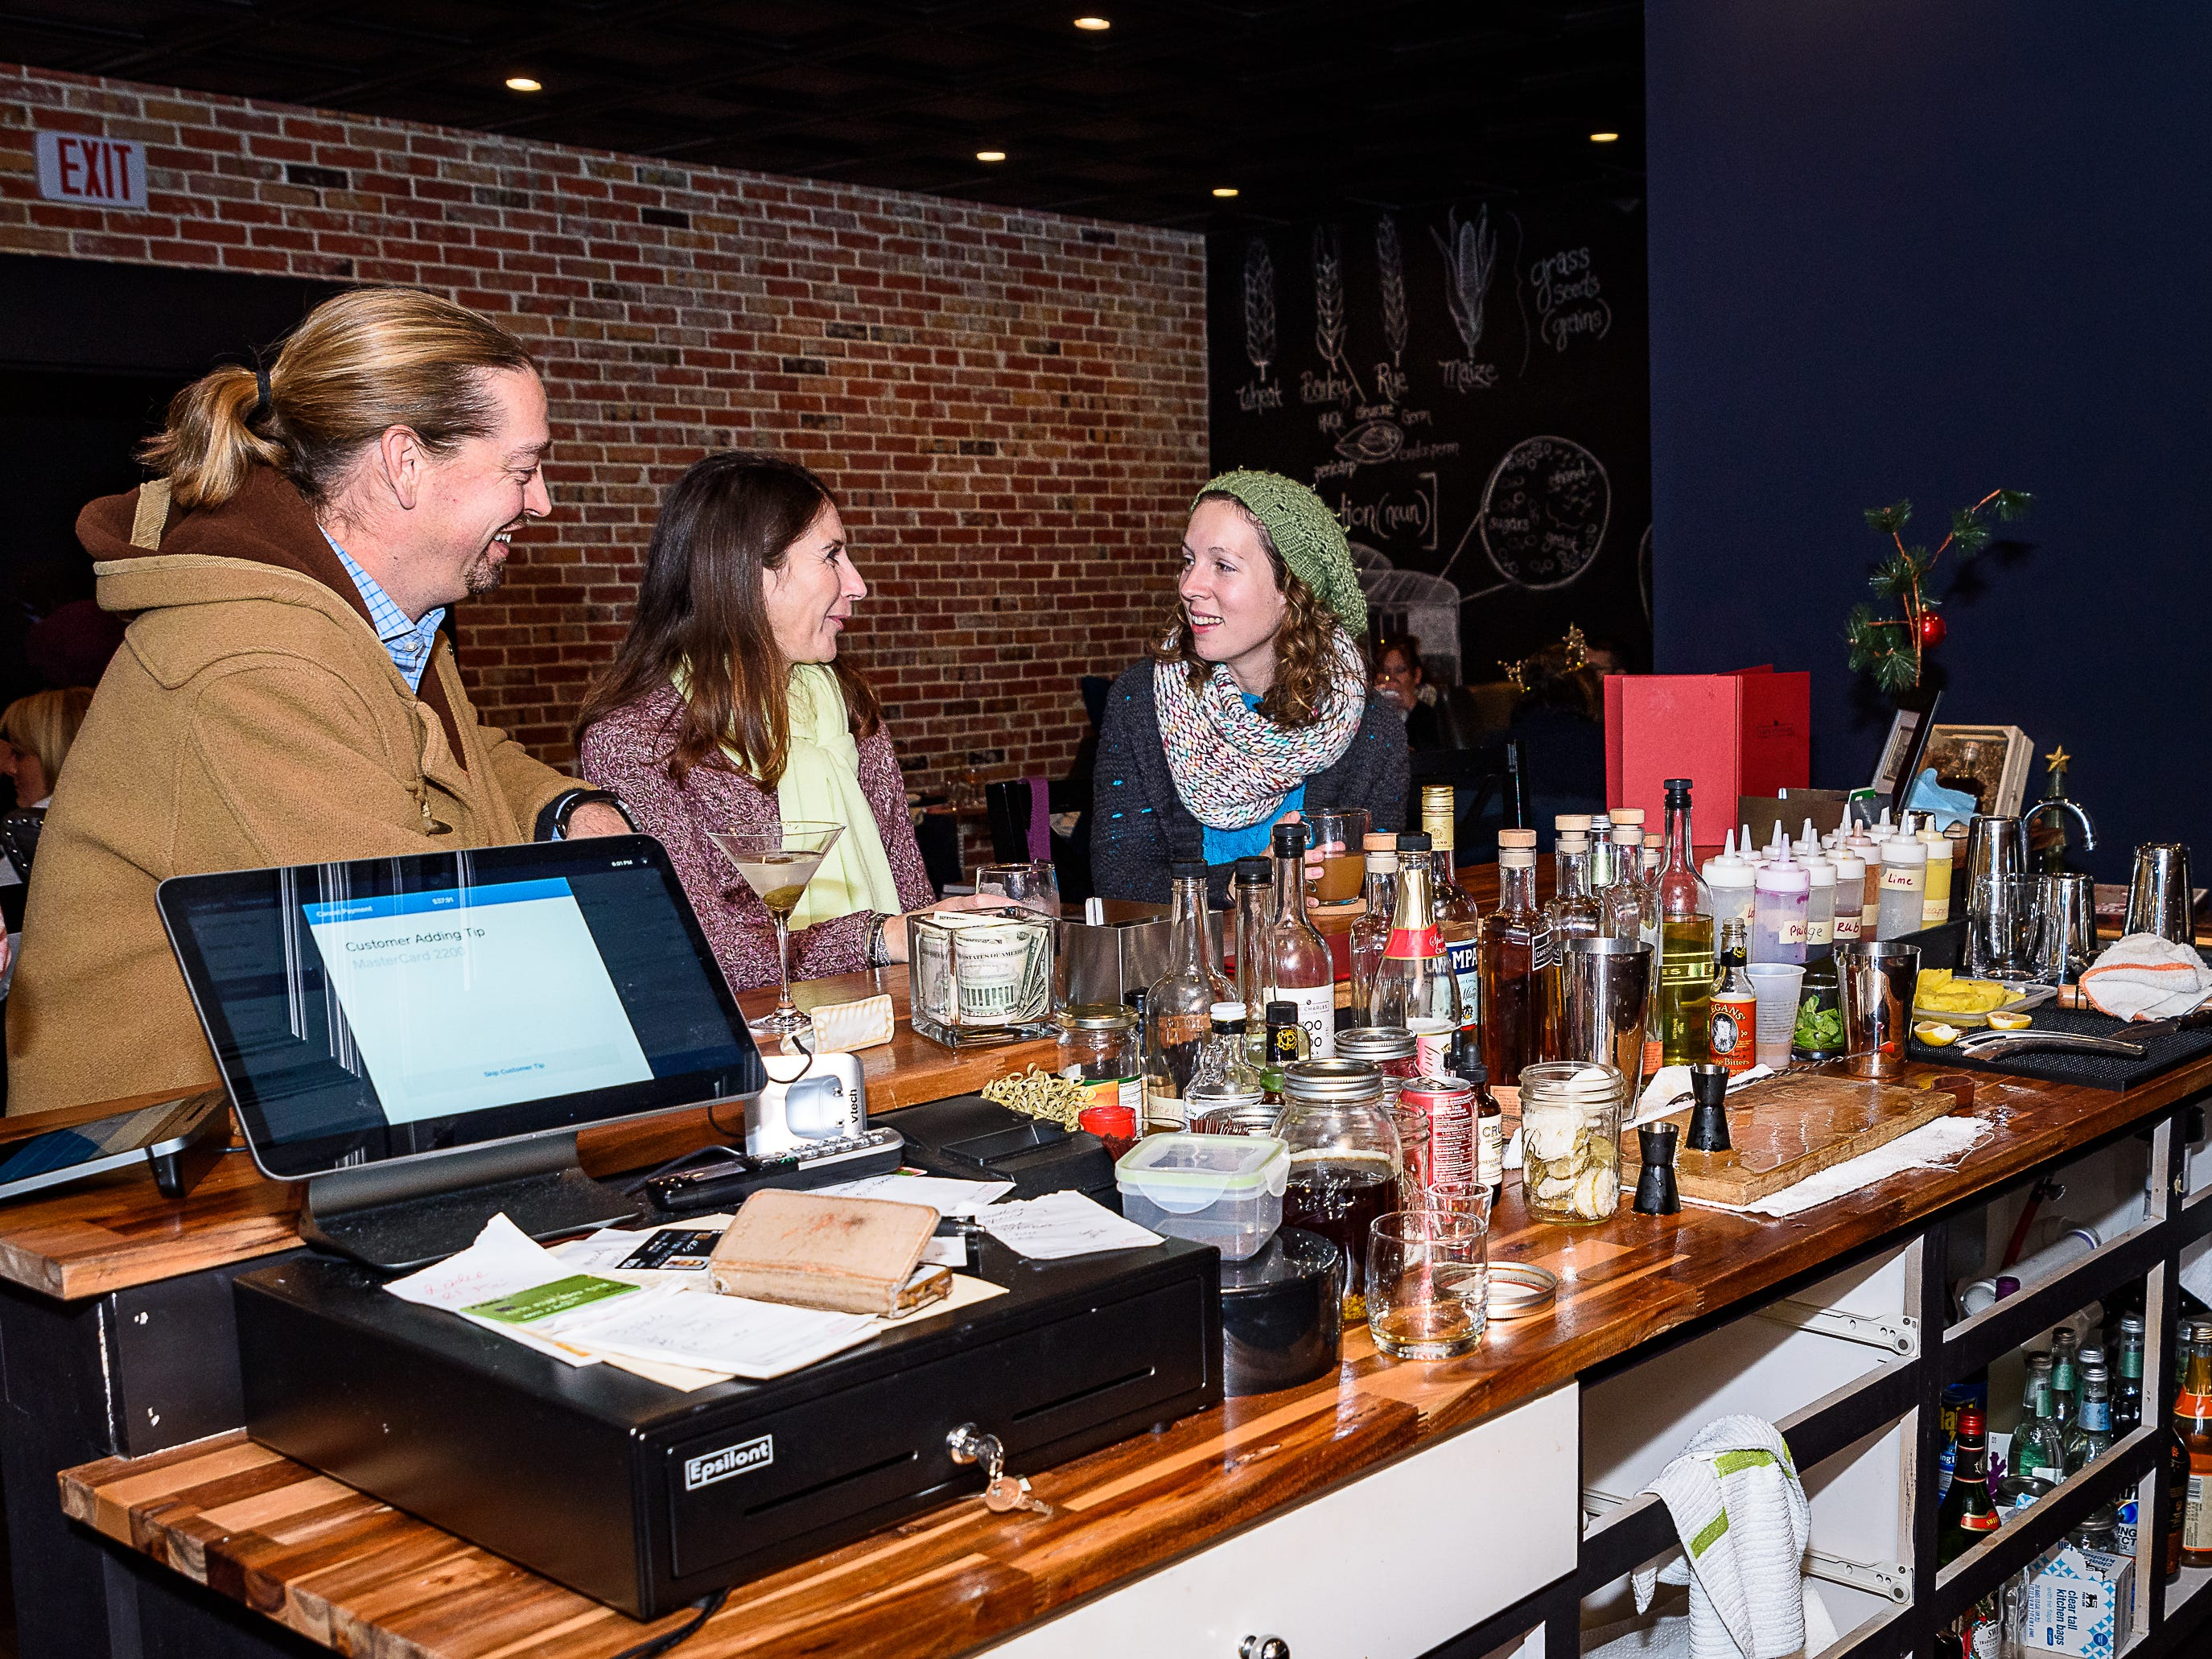 Patrons enjoy cocktails at Cape Charles Distillery during Festive Friday on Nov. 23.